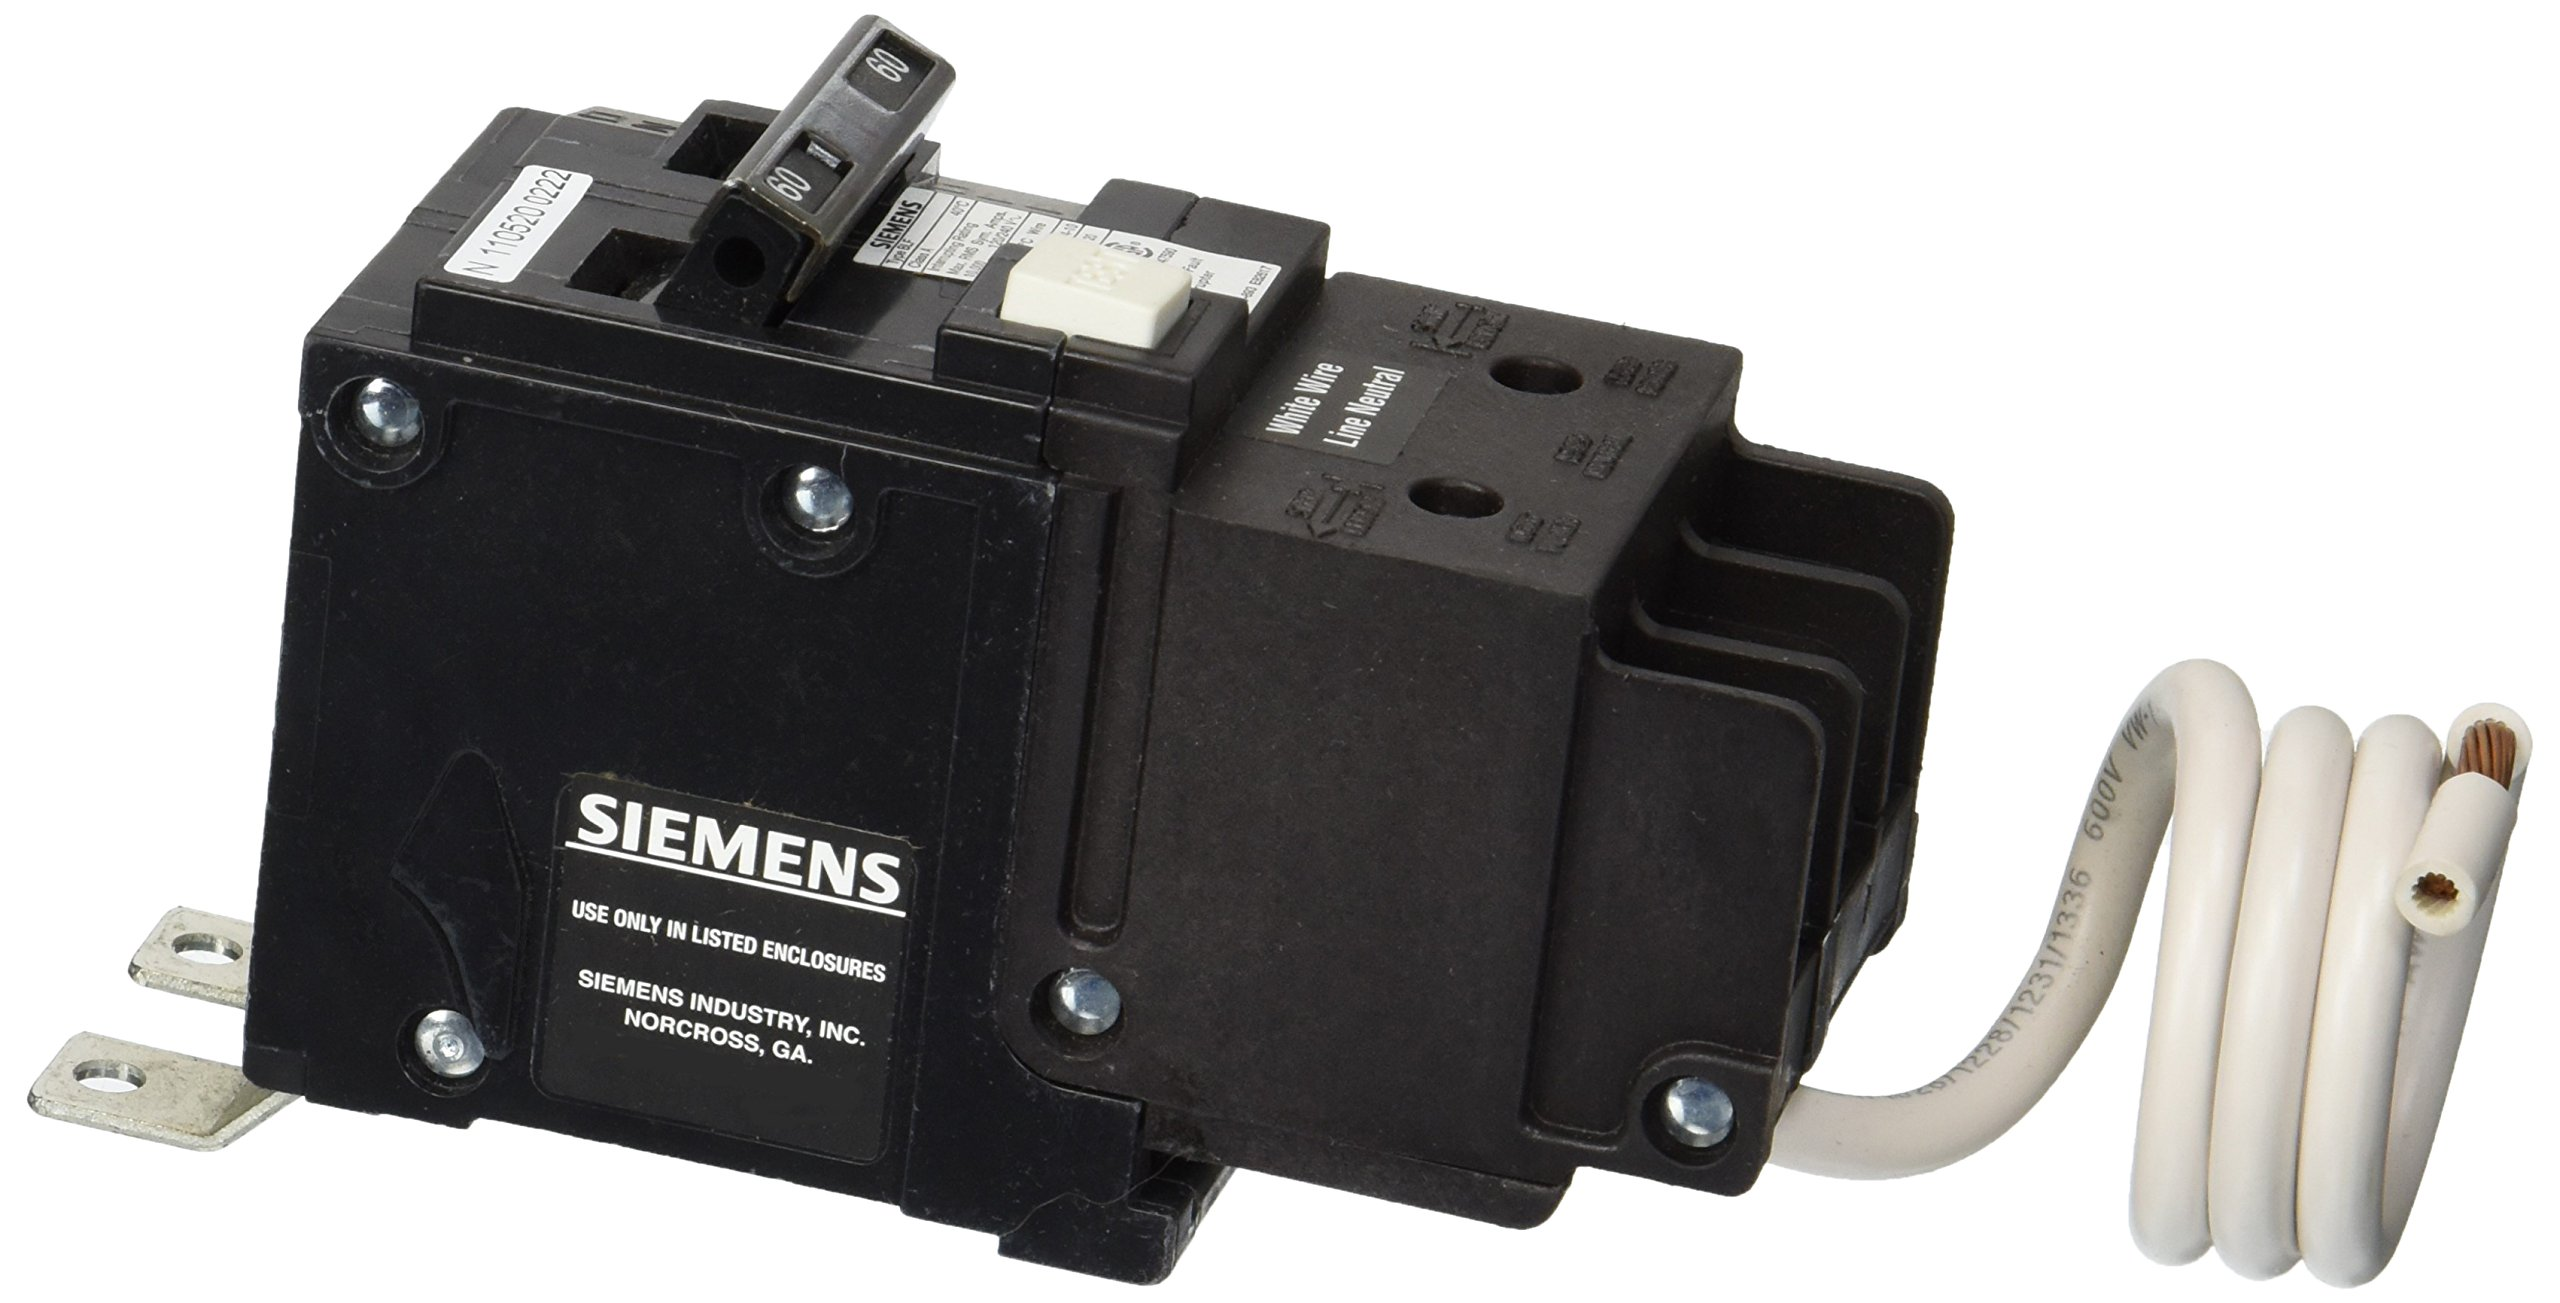 Siemens BF260 60-Amp Double Pole 120 / 240-Volt 10KAIC Ground Fault Circuit interrupter